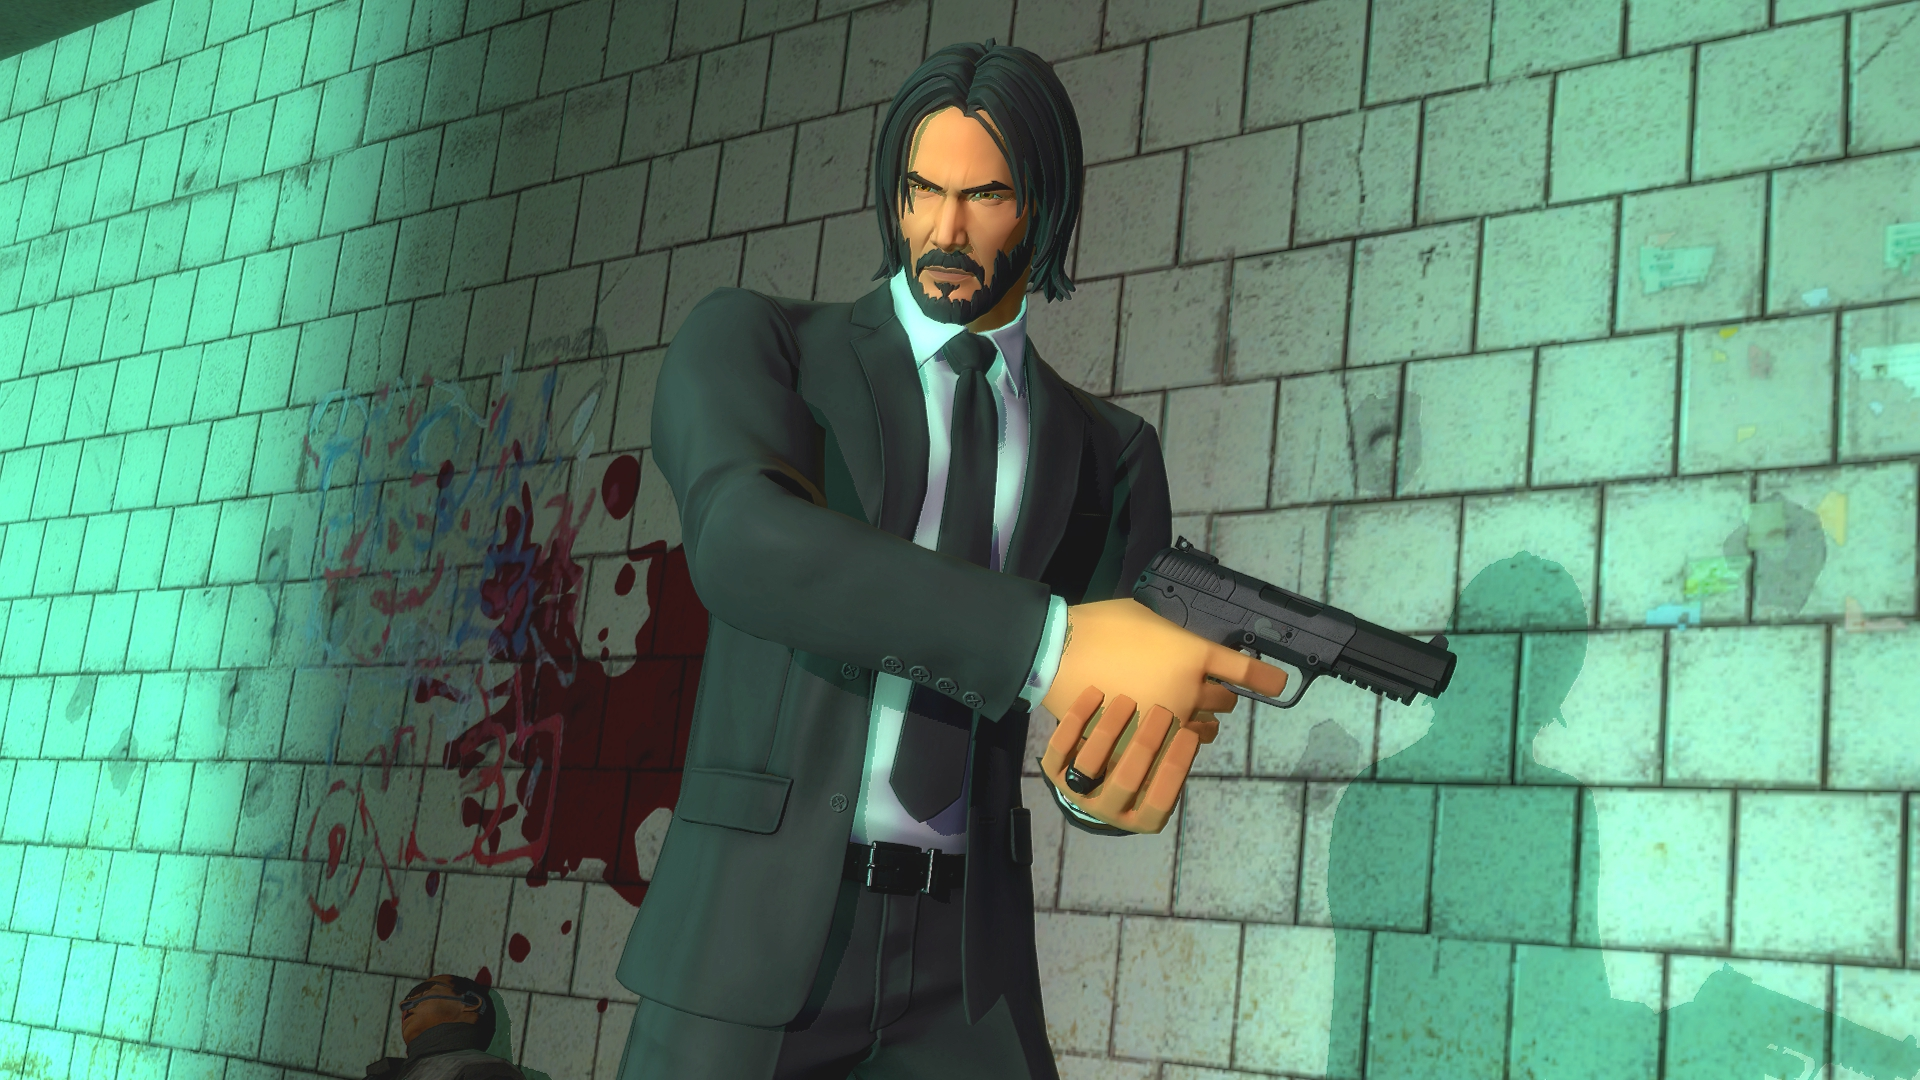 John Wick By Unforgivencaleb On Deviantart